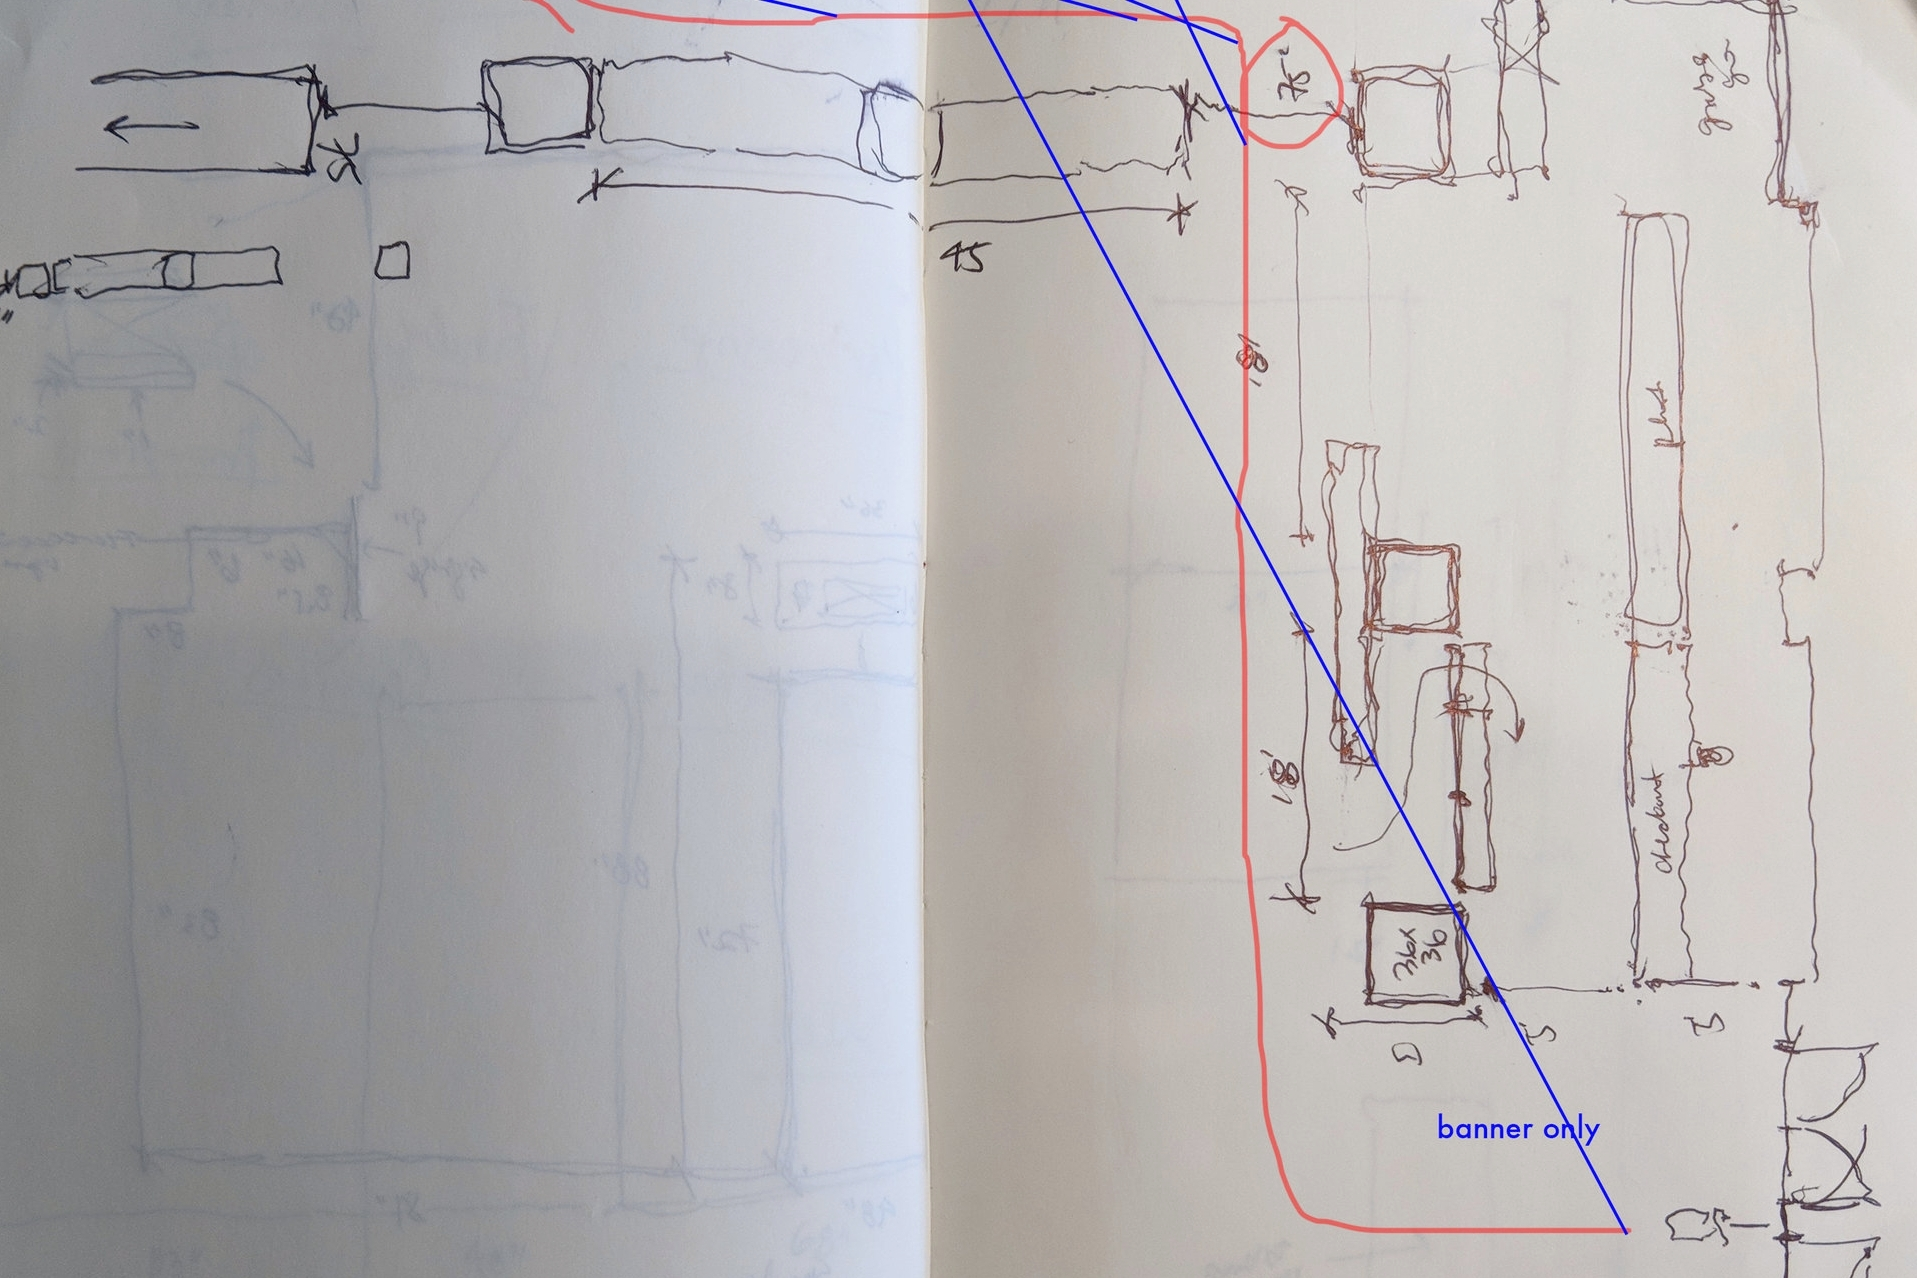 03 Measuring and Sketching   Sketched spatial relationships and measured key lines of sight on site